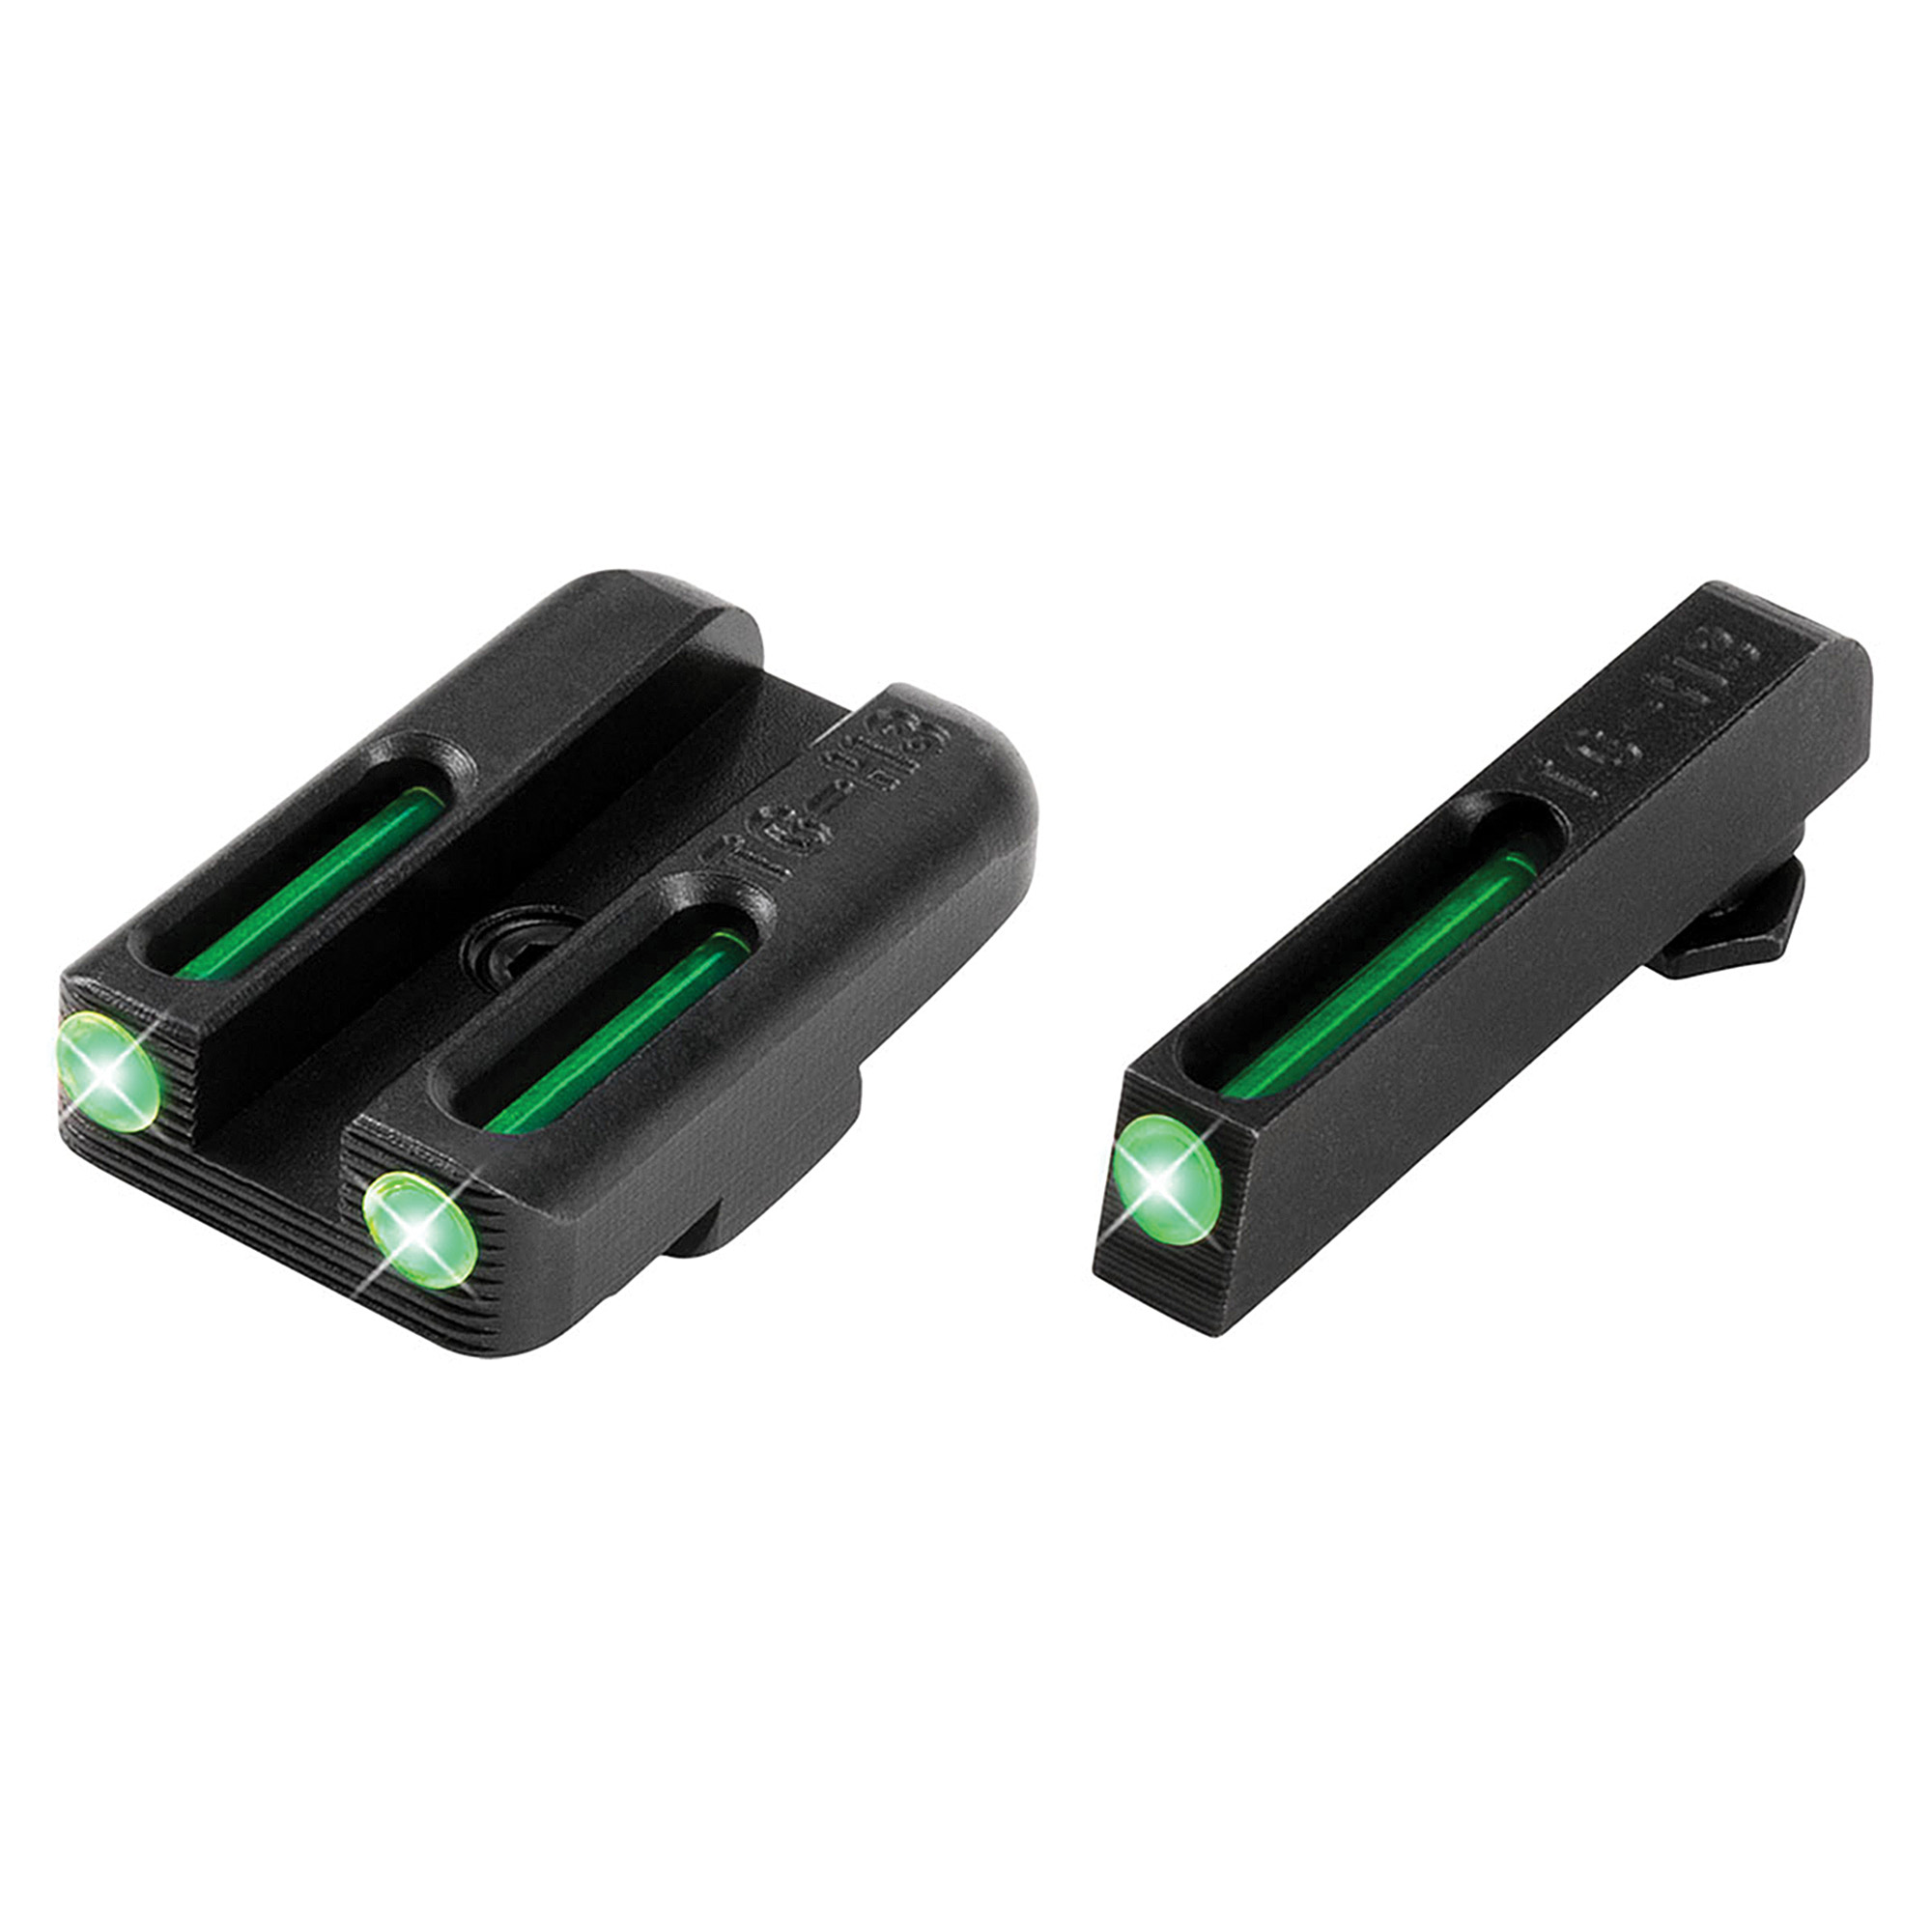 """Truglo Glock 42/43 Set (Green/Green)- When you need to make a fast and accurate shot"""" brightness counts. They brought fiber-optics to the shooting sports industry years ago for this very reason. They have now paired them with their tritium night sights to create a consistently bright sight picture-day or night! Their patented combination of Tritium and Fiber-optic technologies unites the best of both worlds. Whether you are in glaring daylight or complete darkness"""" you can count on TFO(R) to provide a bright and reliable sight picture."""